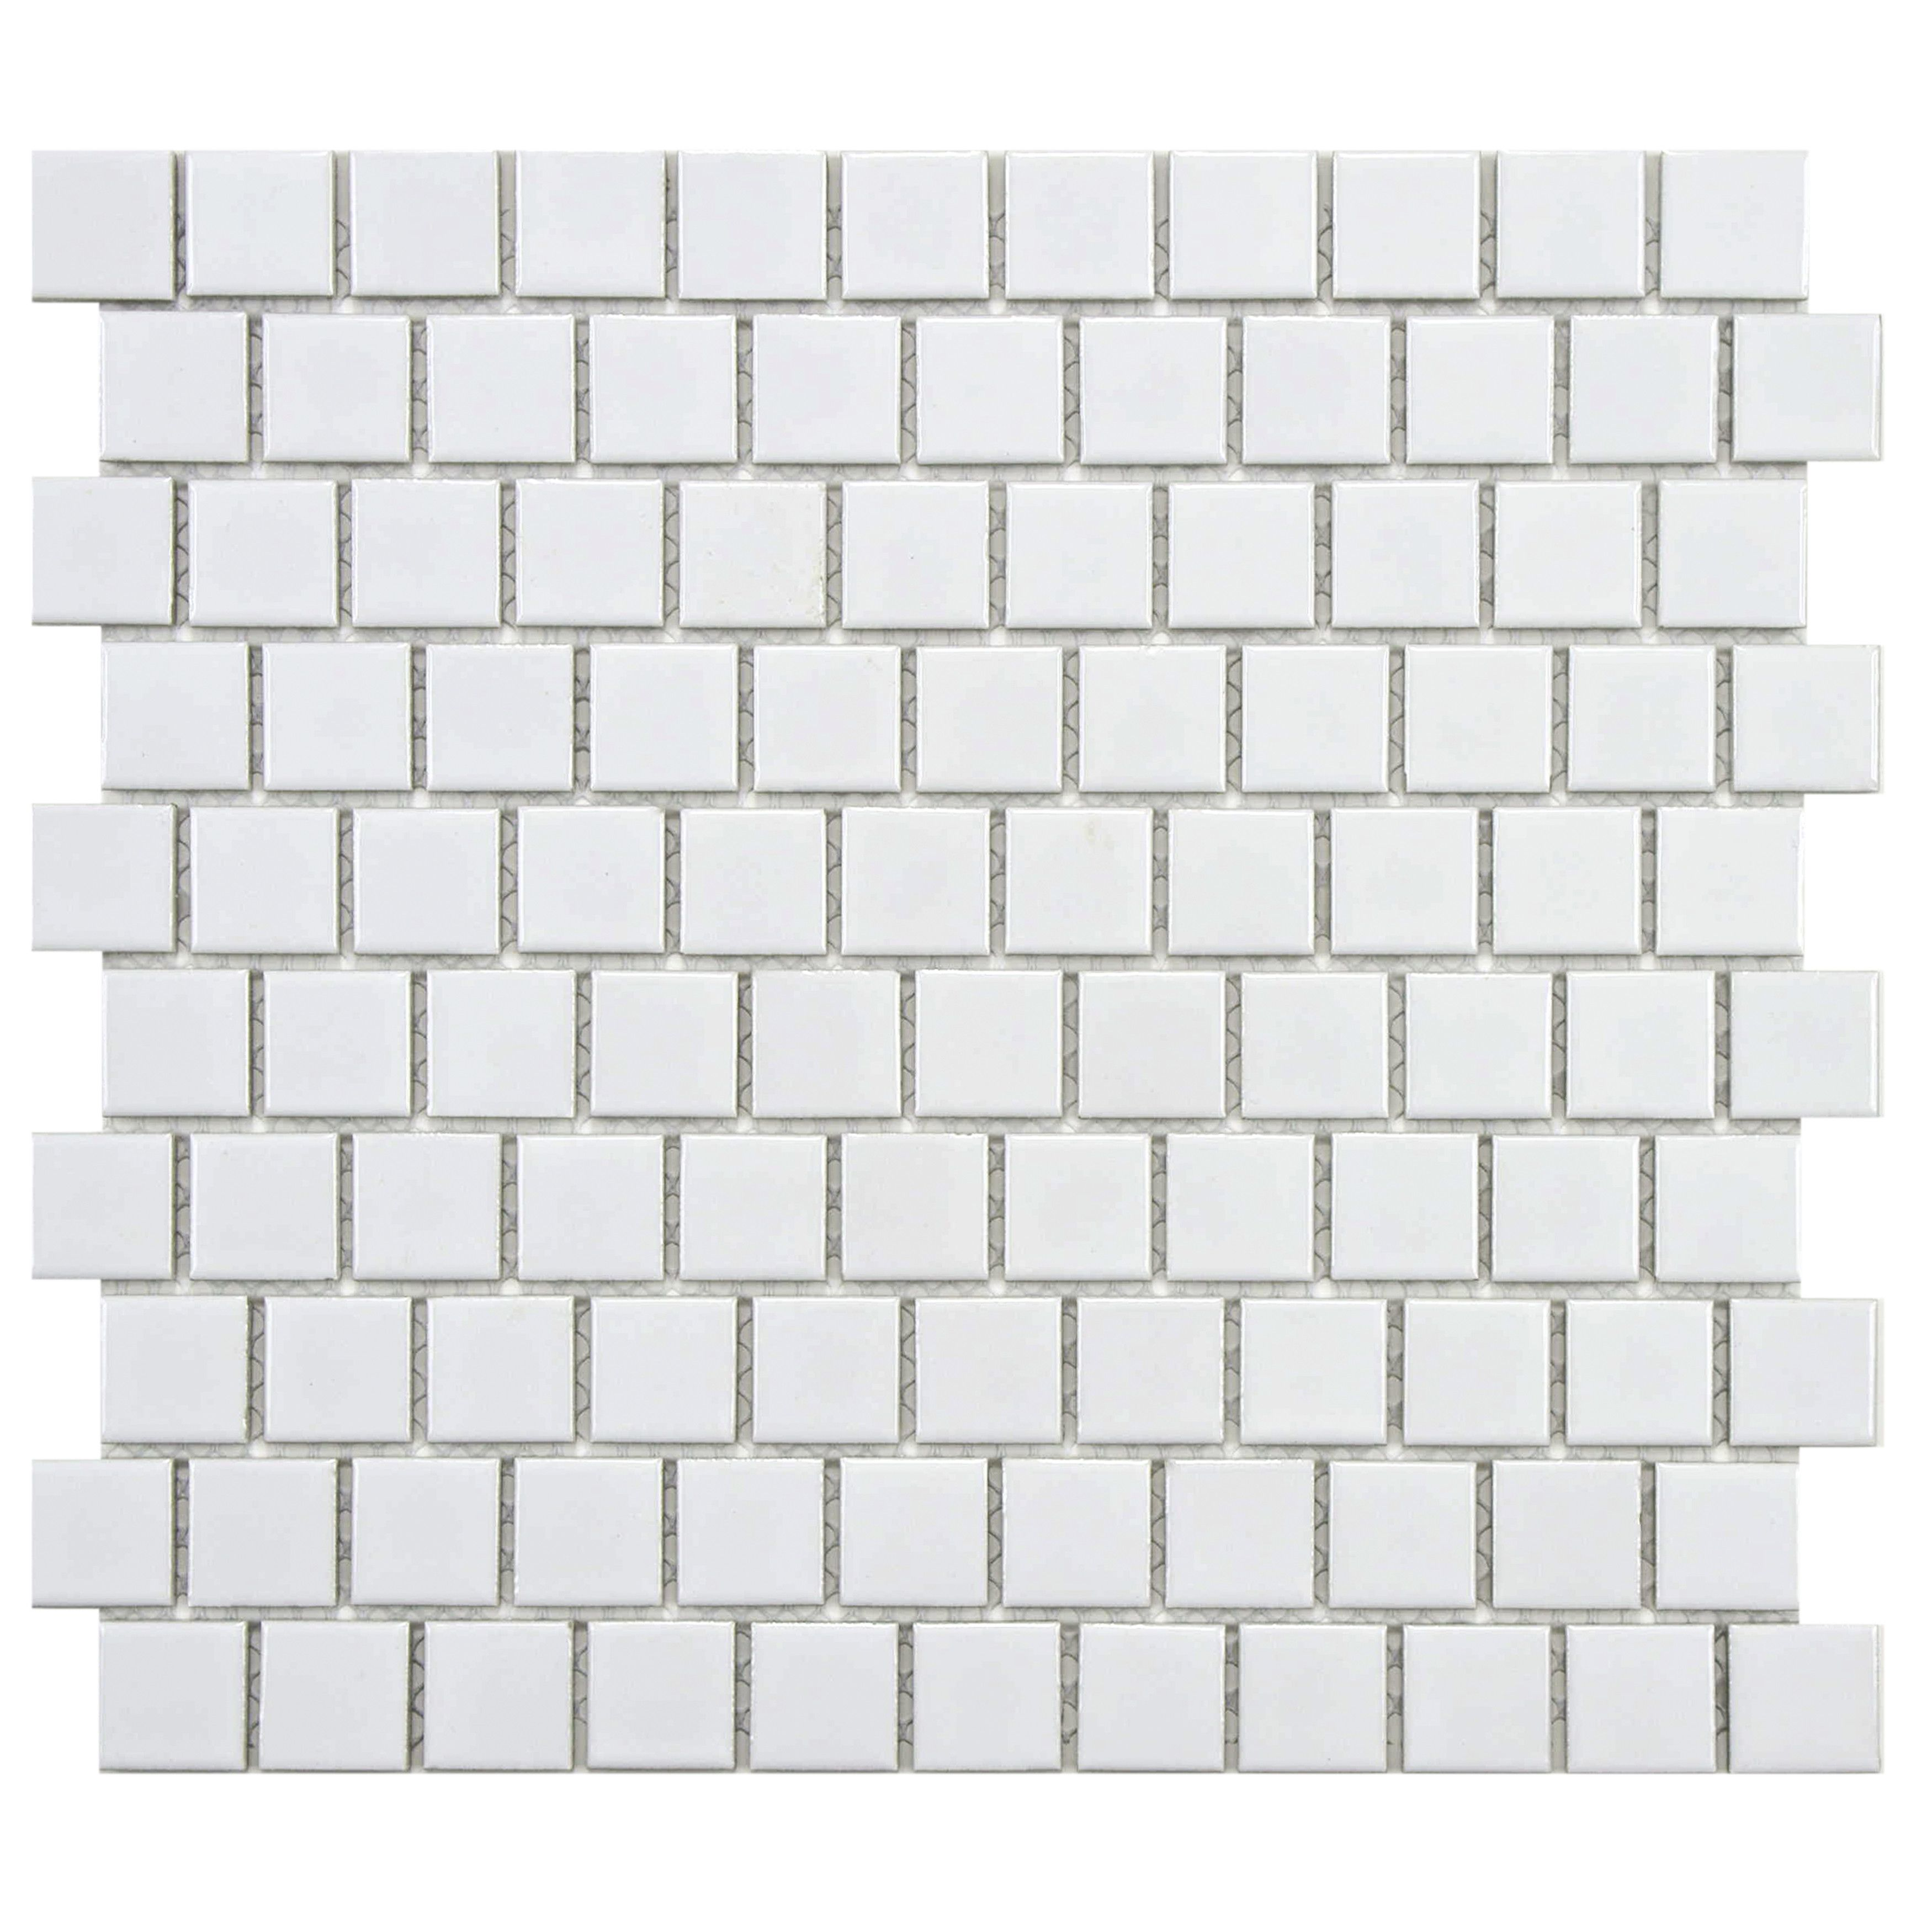 Elitetile retro square offset 1 x 1 porcelain mosaic tile in somertile victorian square glossy offset porcelain mosaic floor and wall tile case dailygadgetfo Image collections